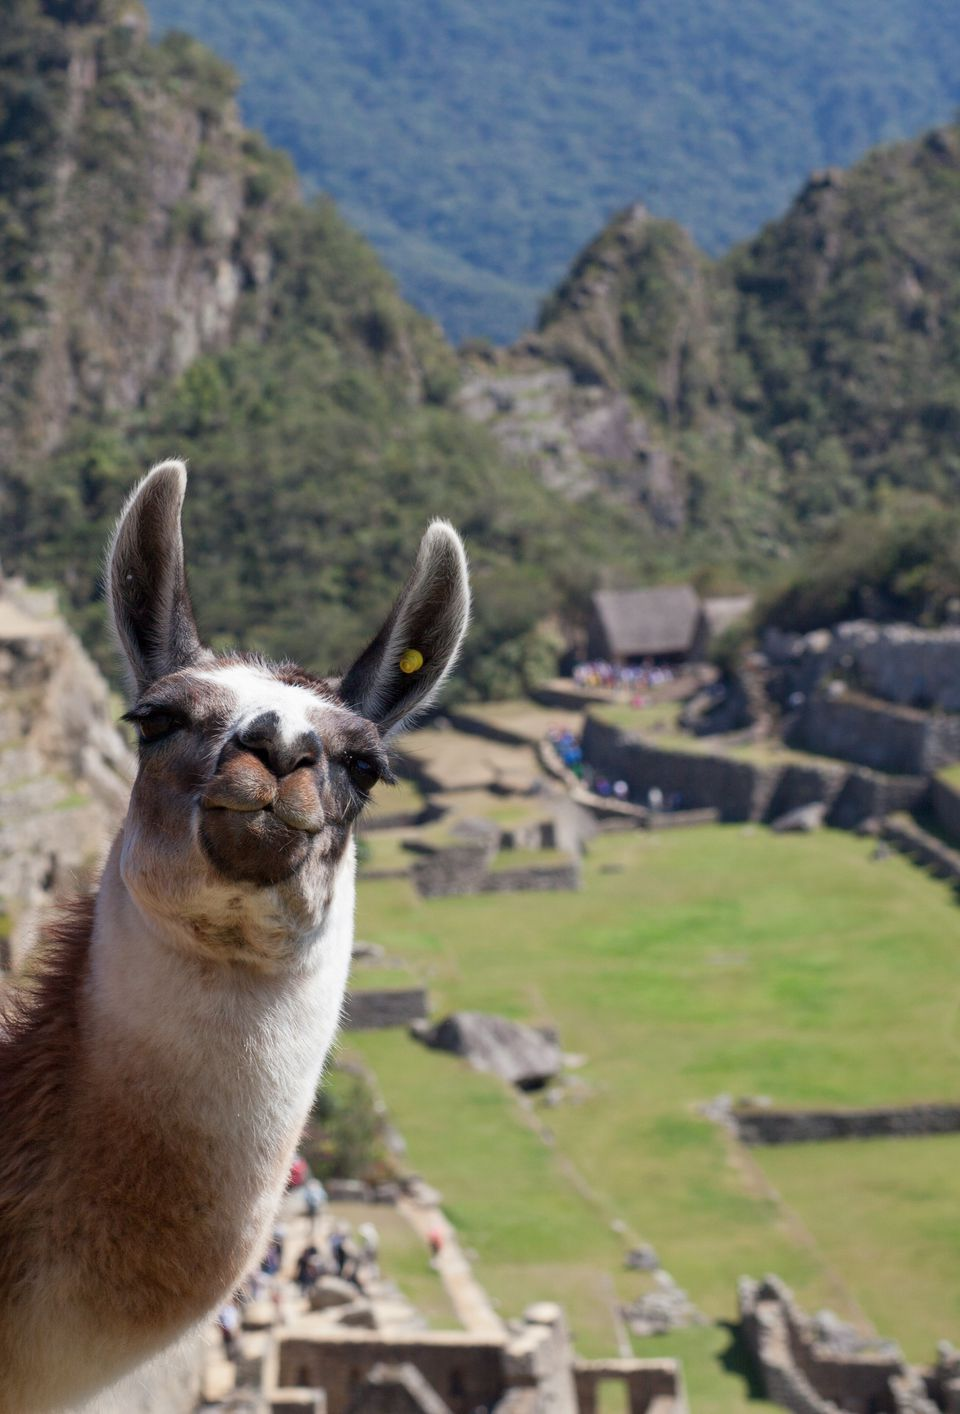 A friendly Llama on top of Machu Picchu poses for the cameras.